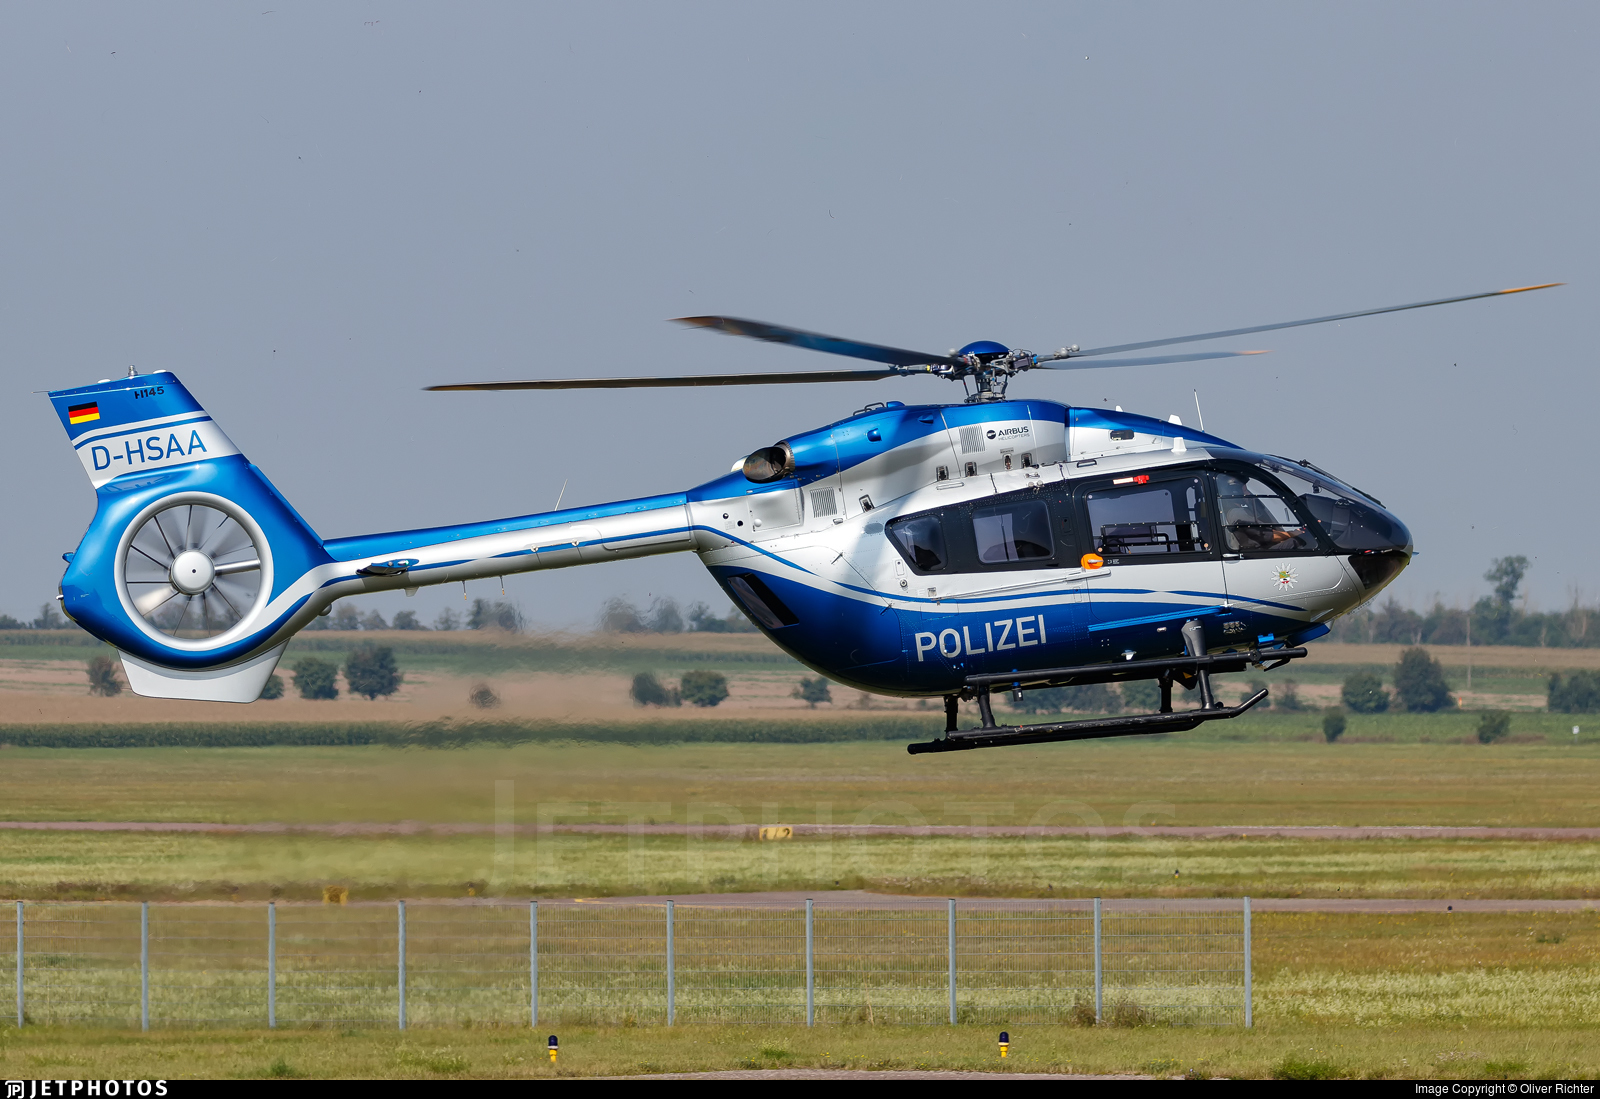 D-HSAA - Airbus Helicopters H145 - Germany - Police